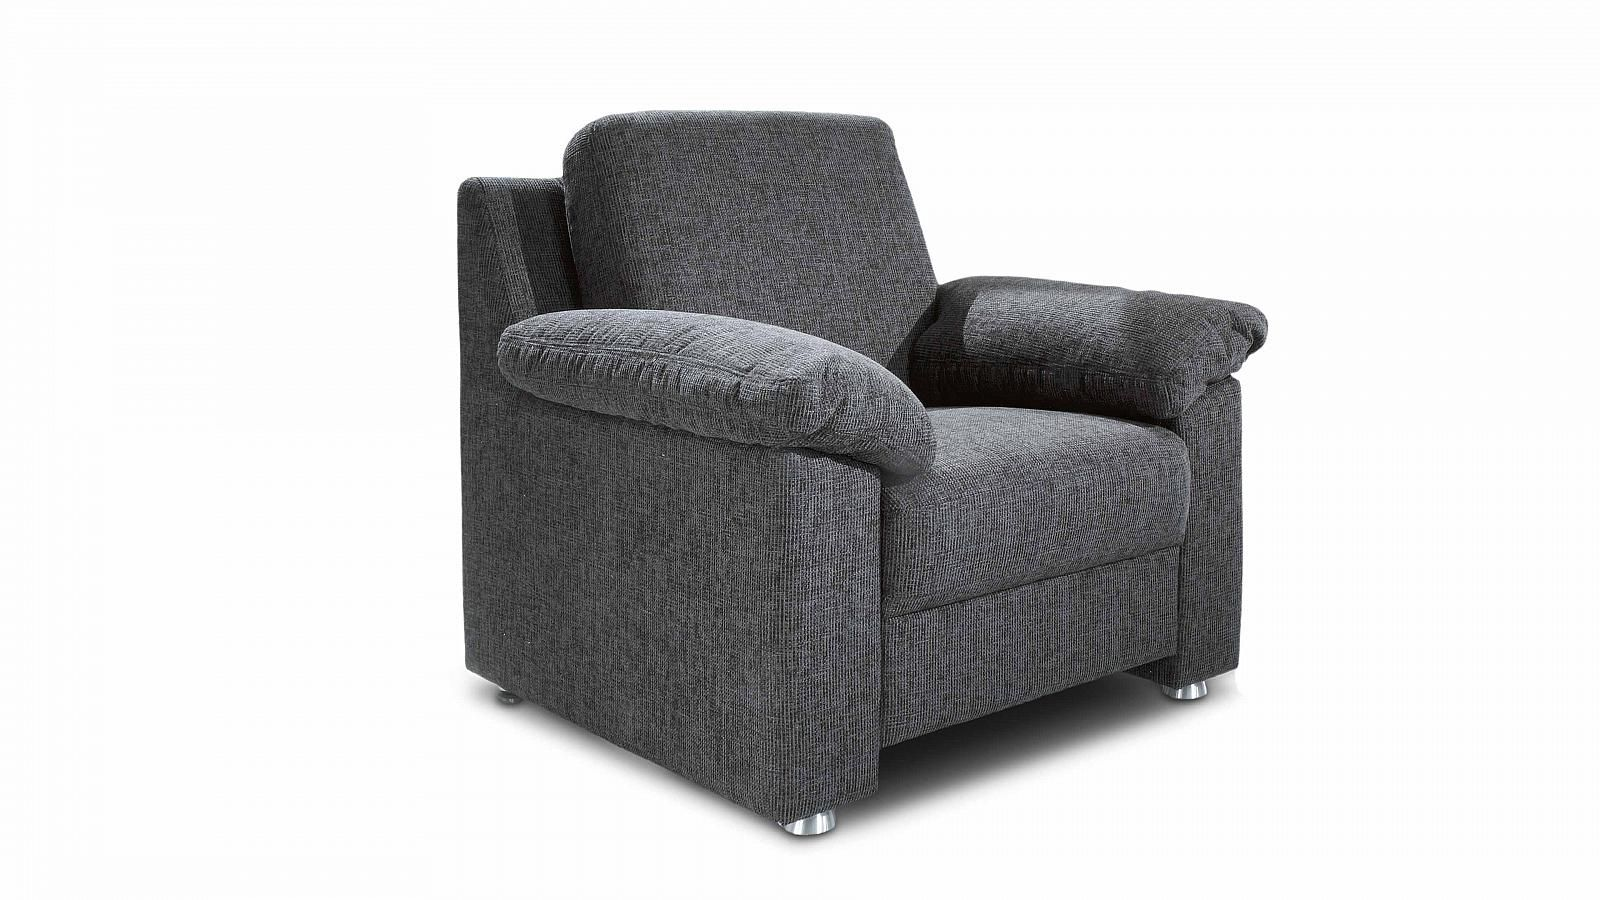 Duo Collection Tv Sessel Möbel Rieger Esslingen Möbel A Z Couches Sofas Ecksofas